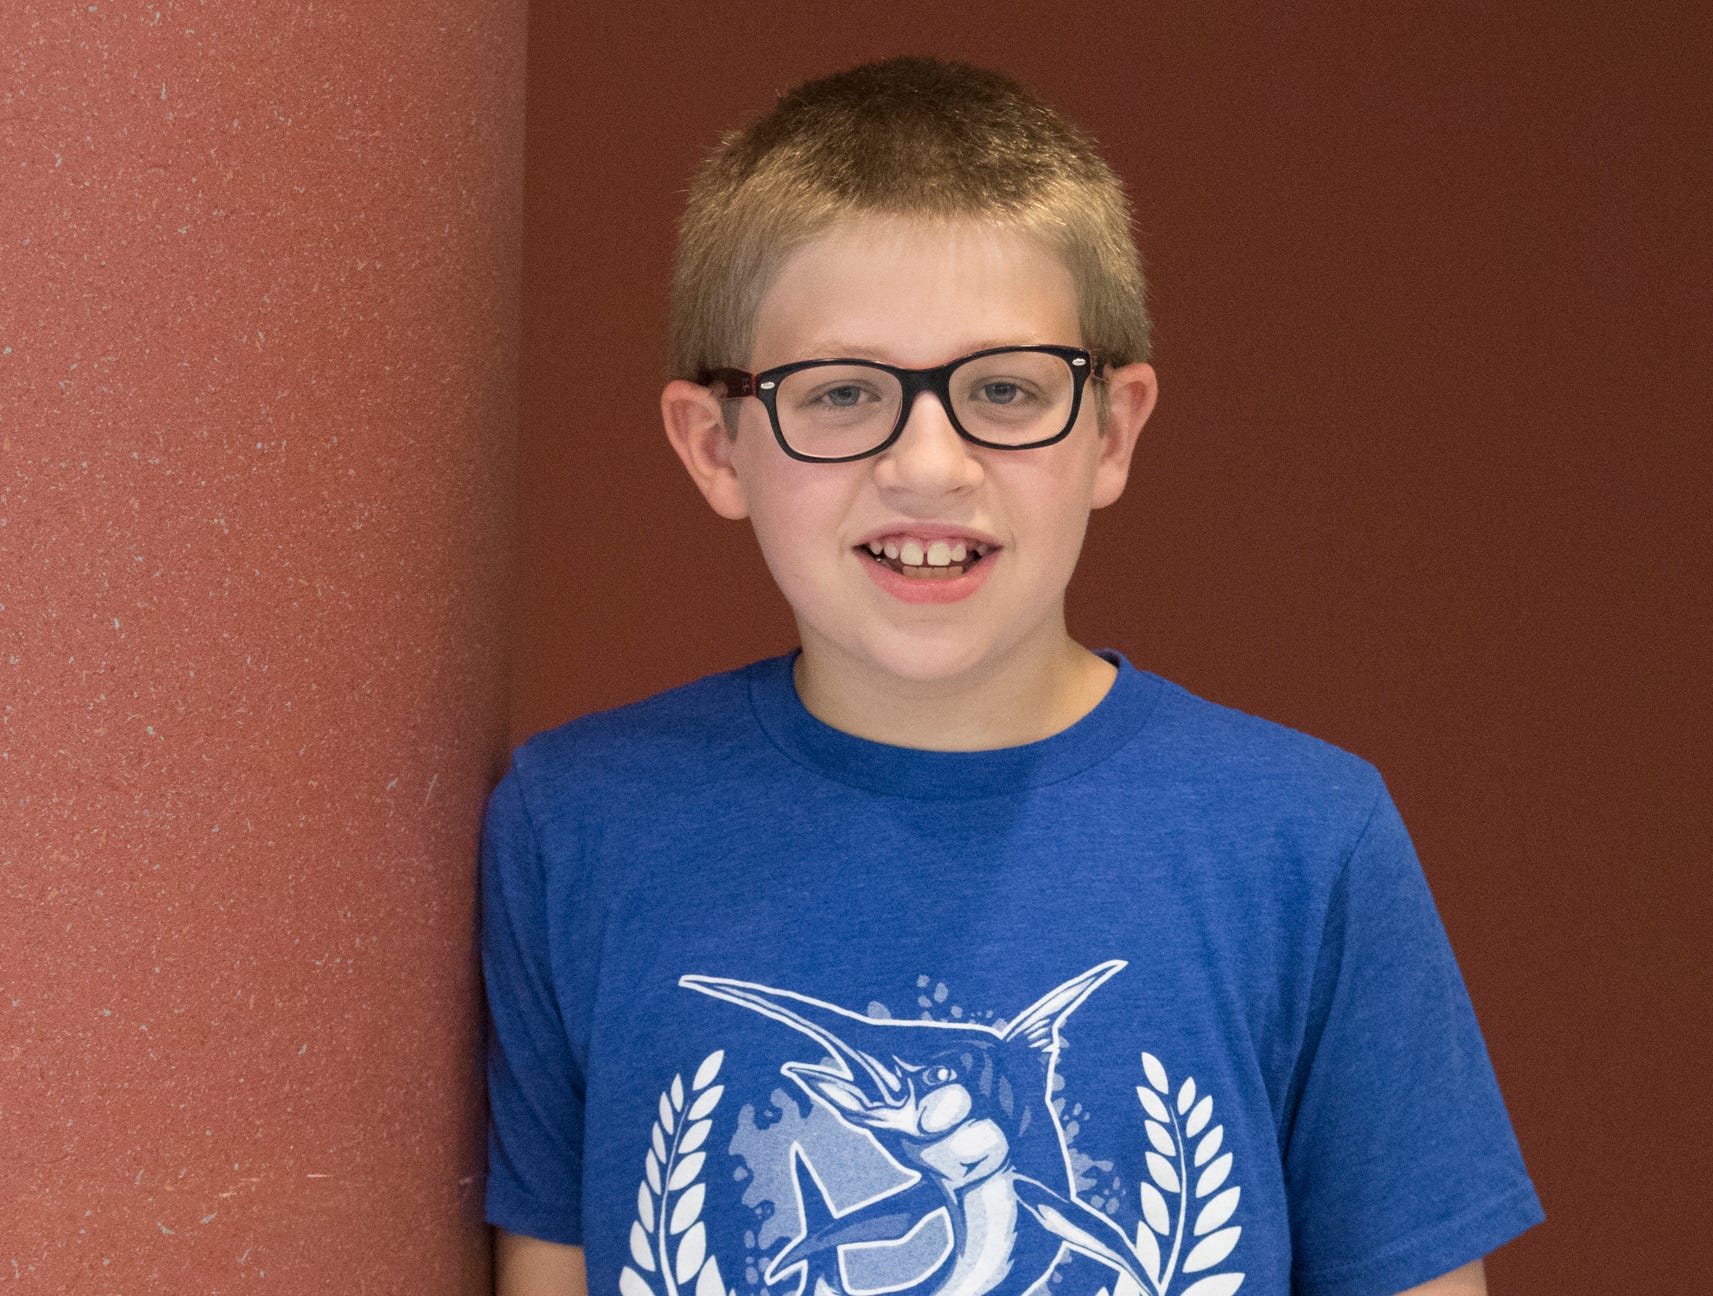 Isaac Crawford, 10, Mud Crew. Project: Science Fun with Electricity